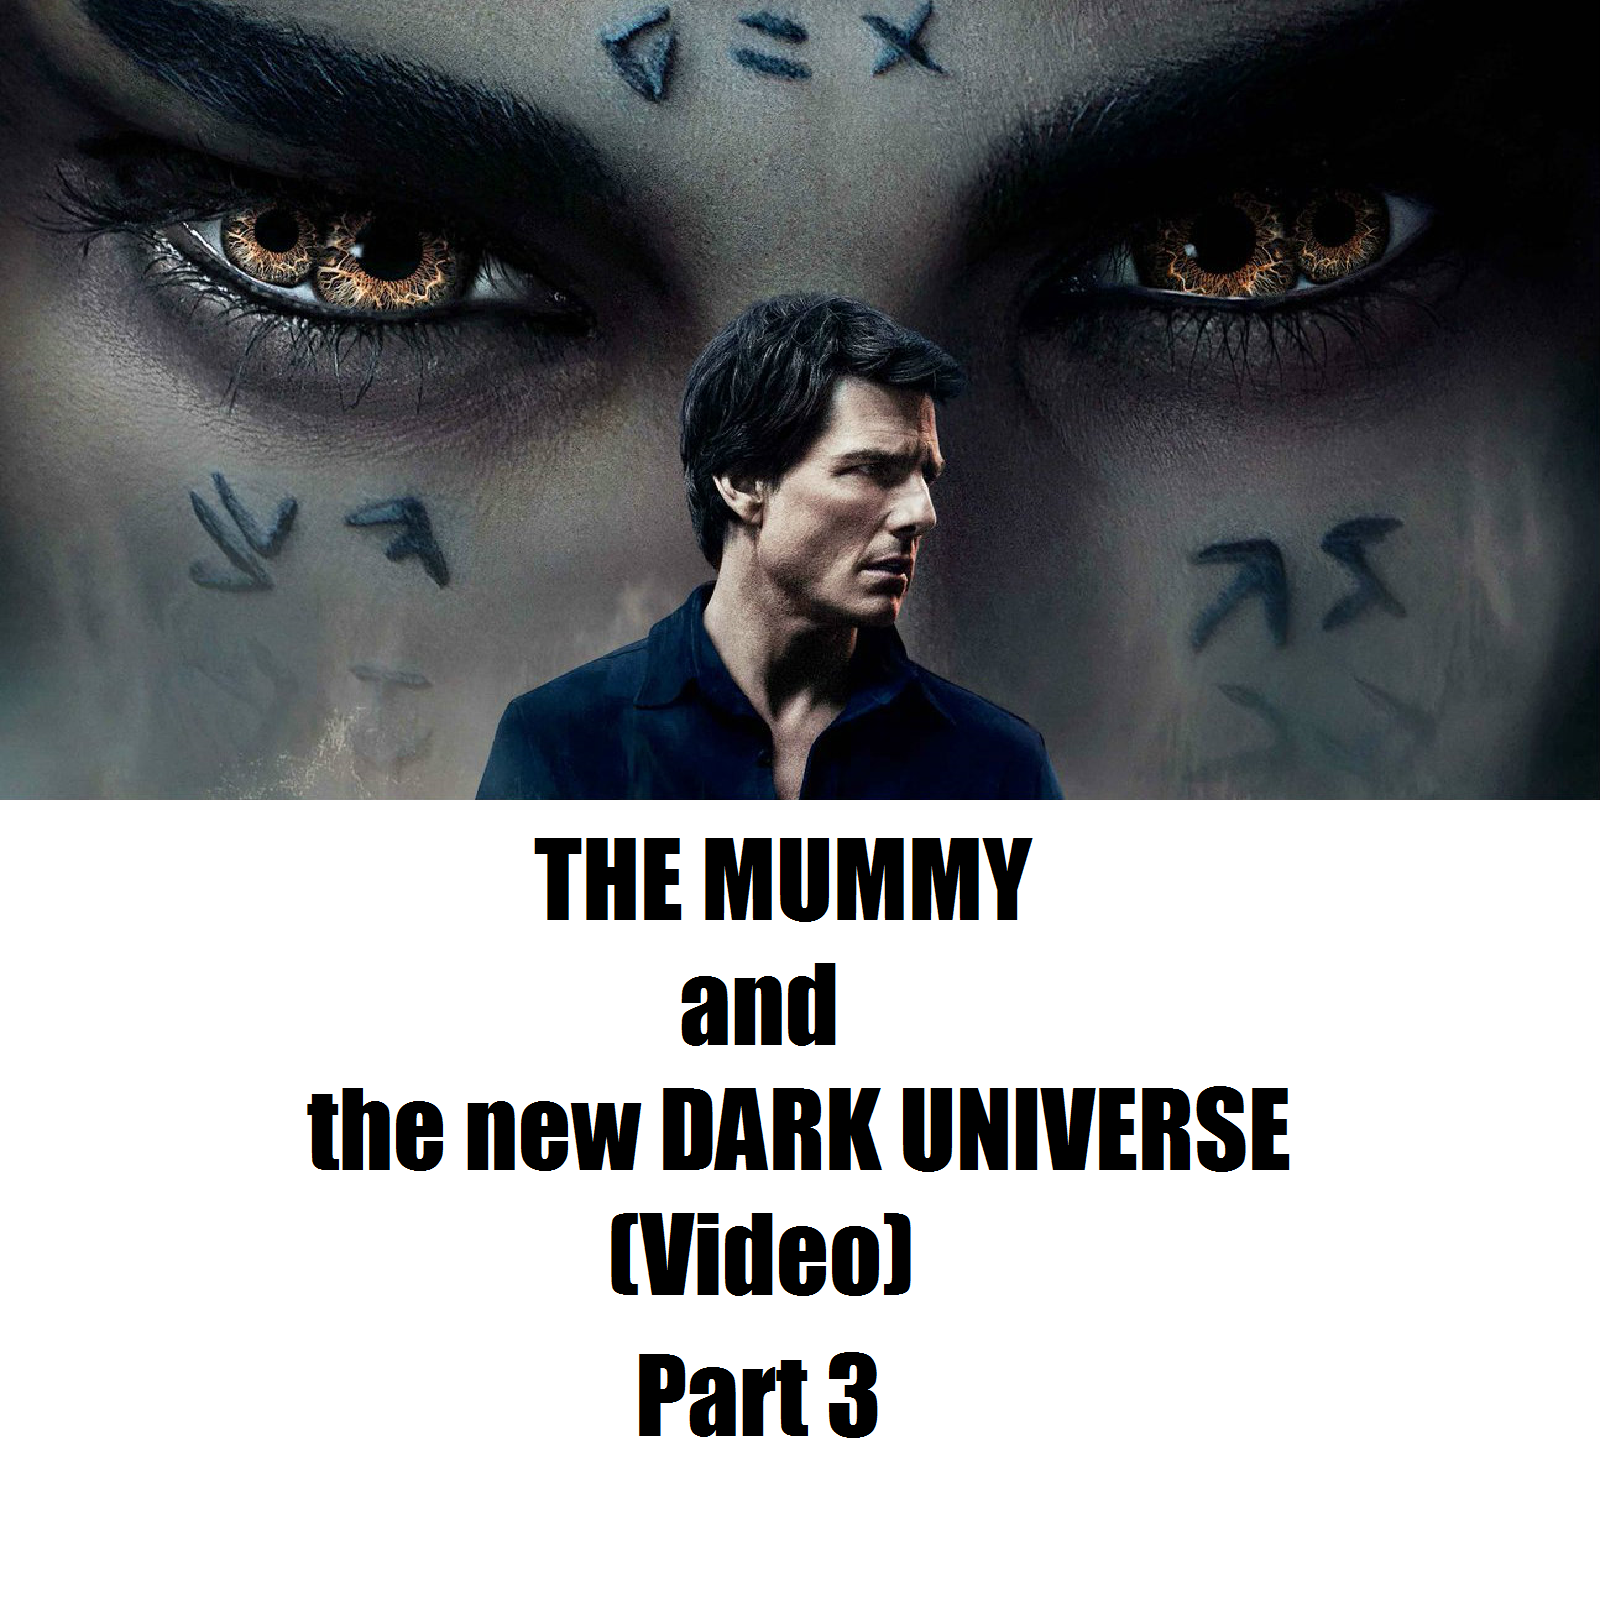 Artwork for VIDEO - Is THE MUMMY what you thought it would be? (Part 3 of 4)